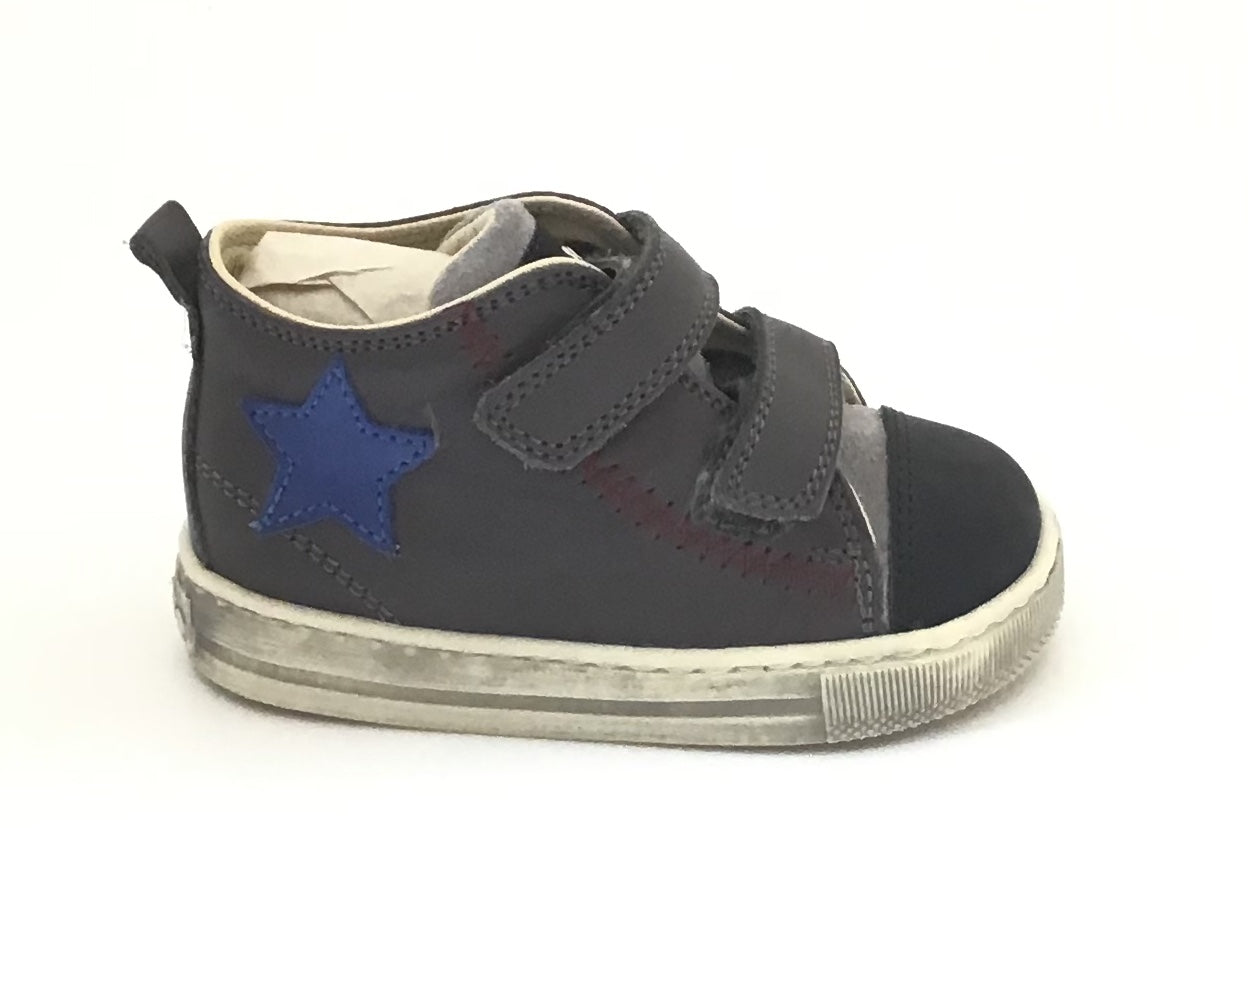 Falcotto Charcoal Sneaker with Blue Star and Double Velcro